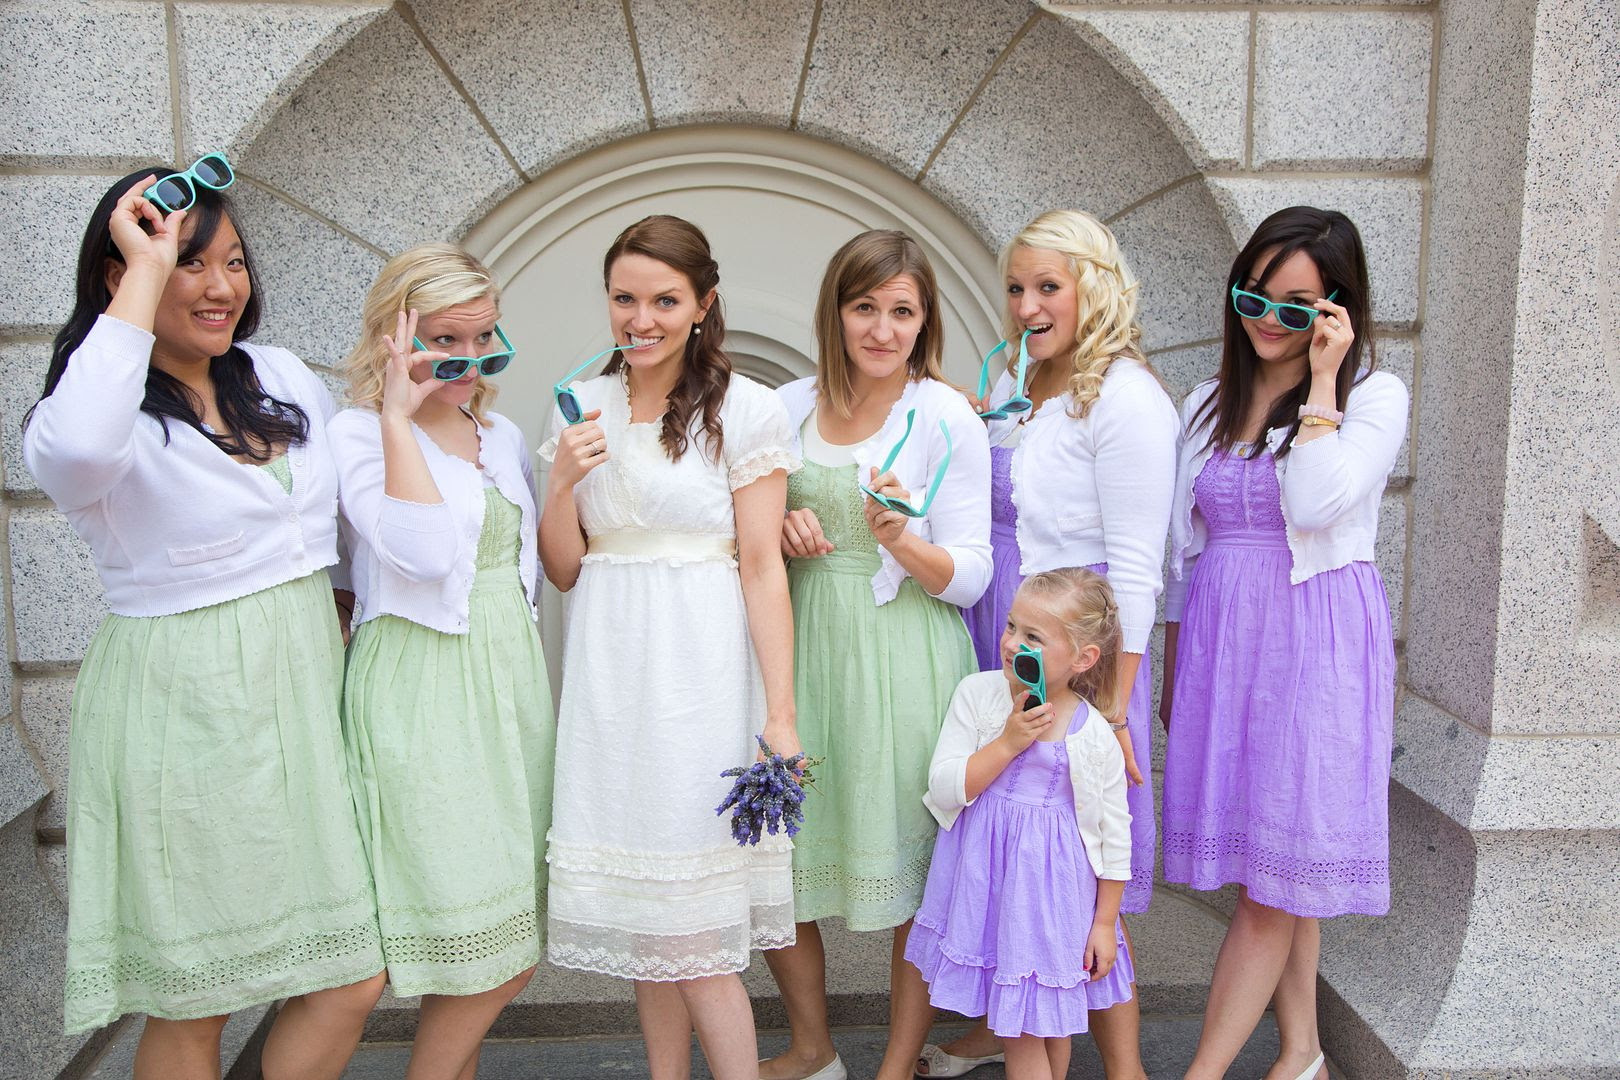 Sunglasses with Sisters photo emilybrownphotography_MichelleampMike_387_2_zps243e4912.jpg